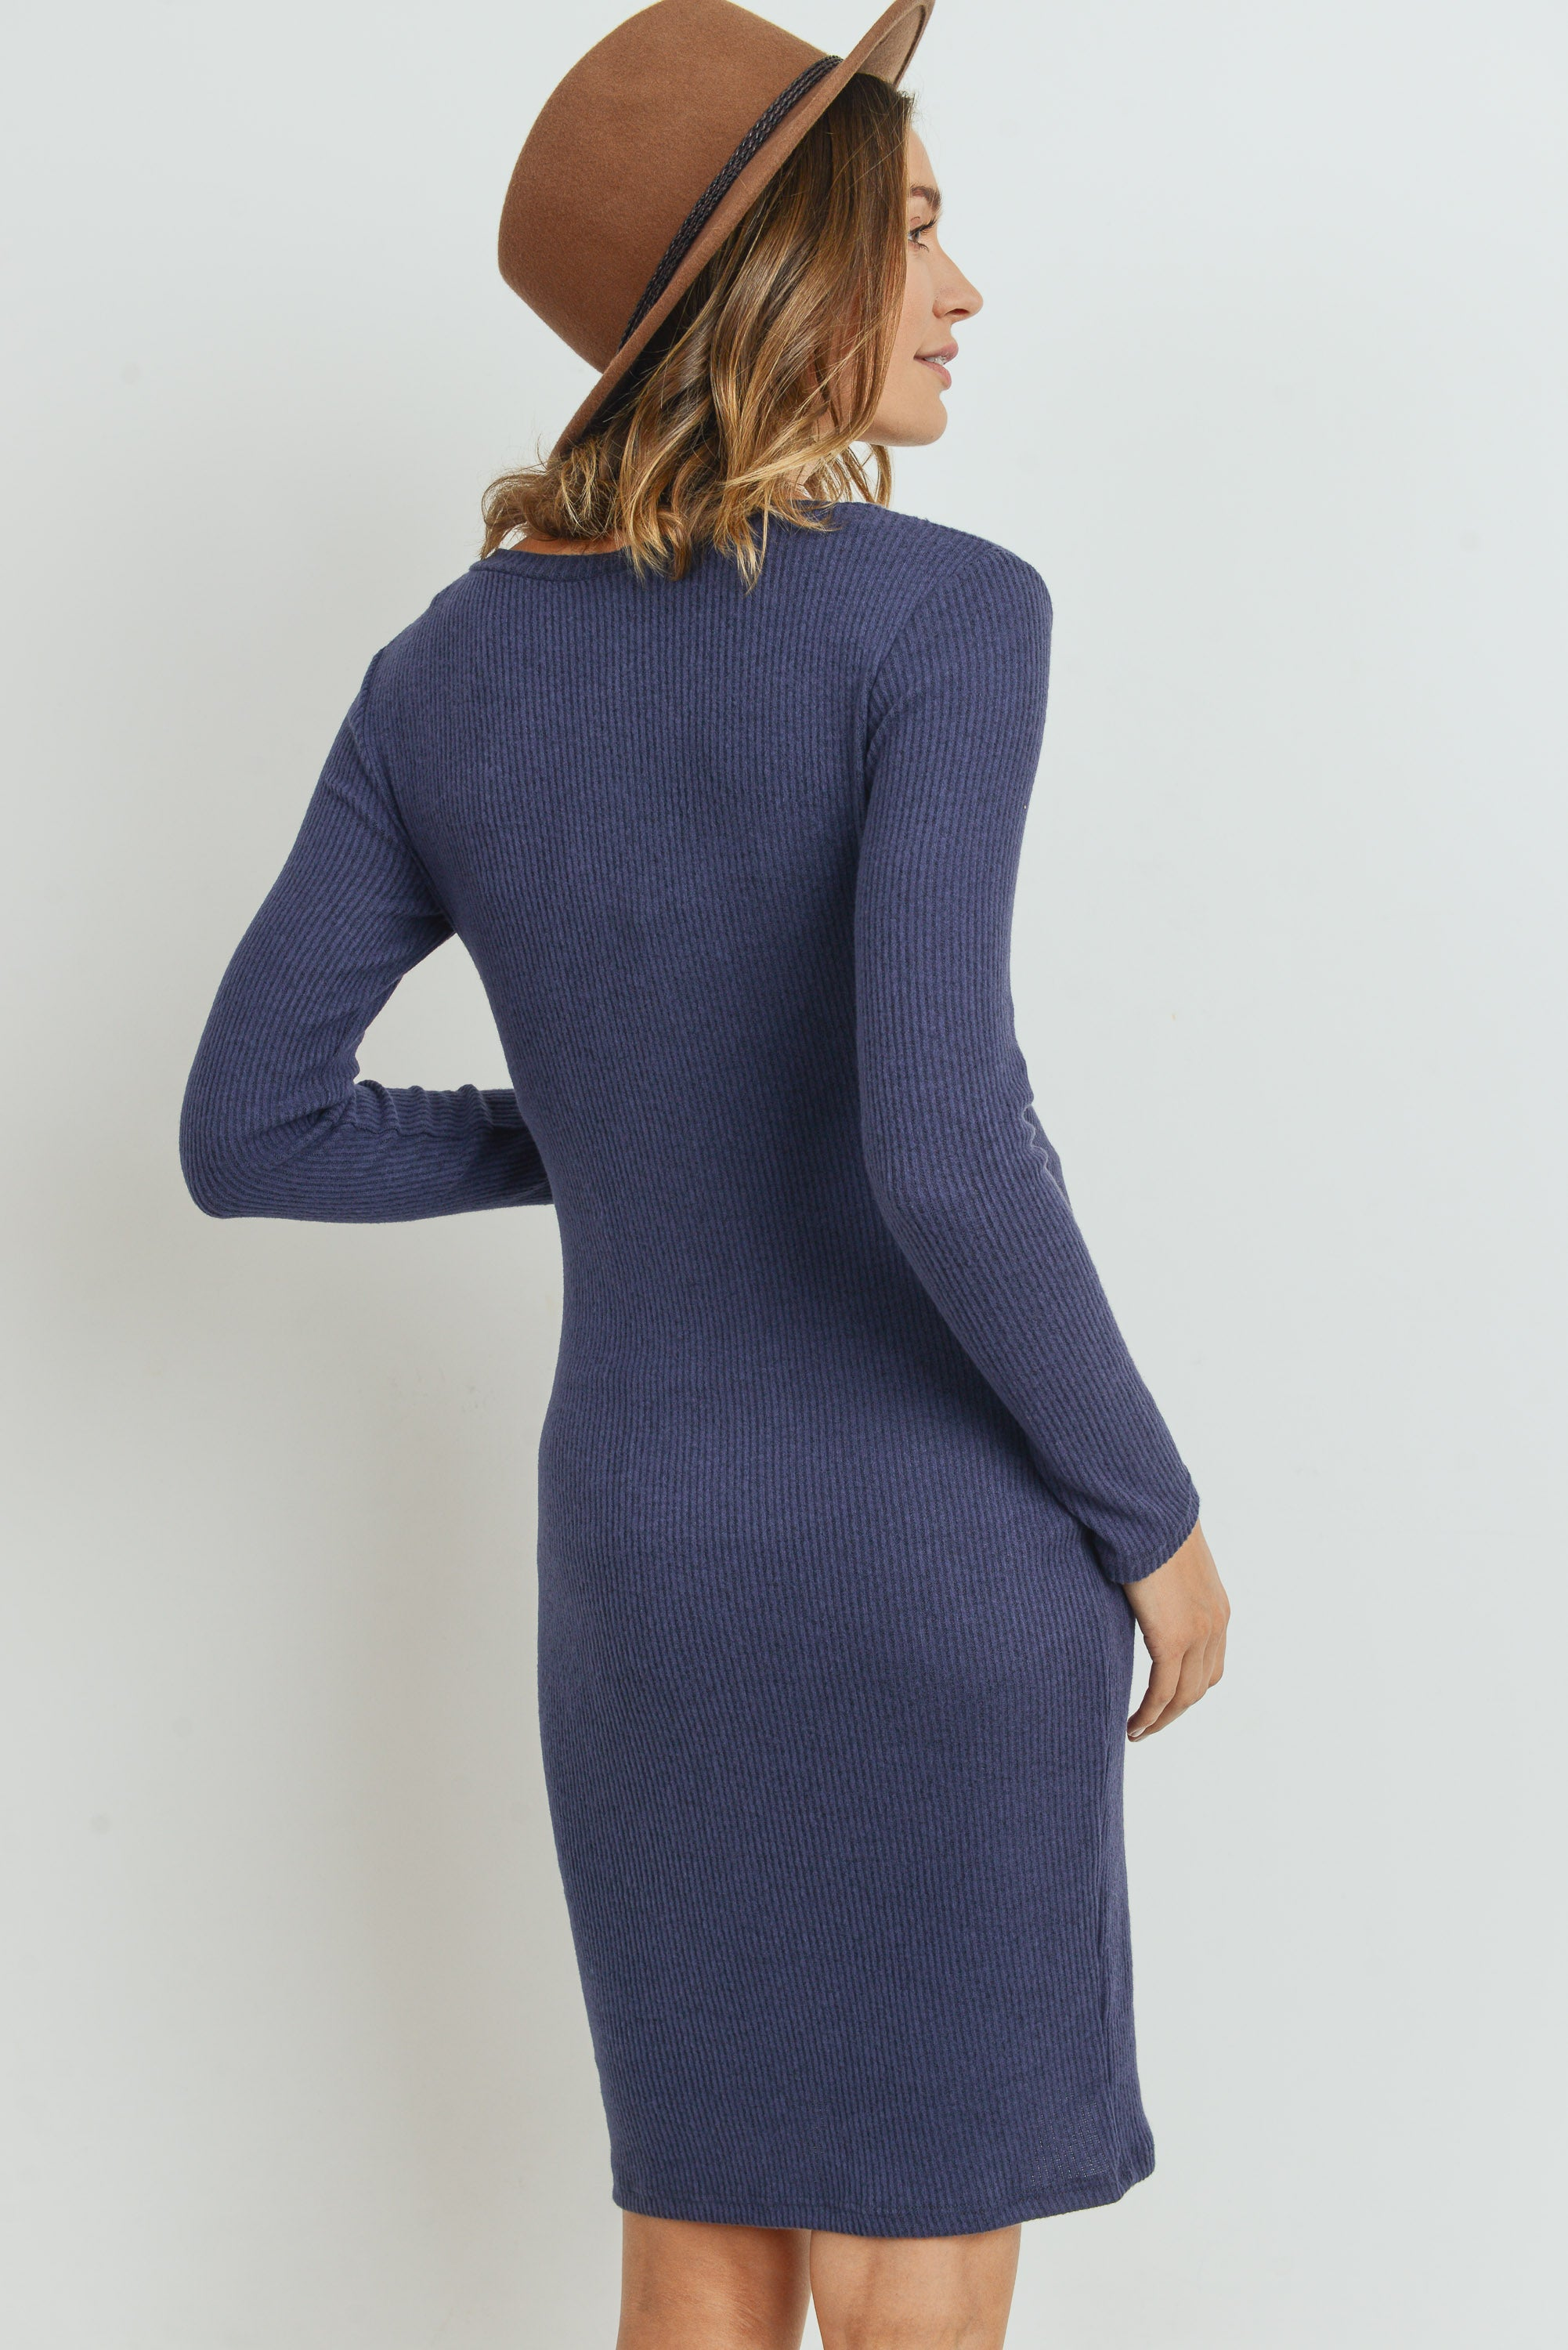 Long Sleeve Rib Knit Maternity Dress